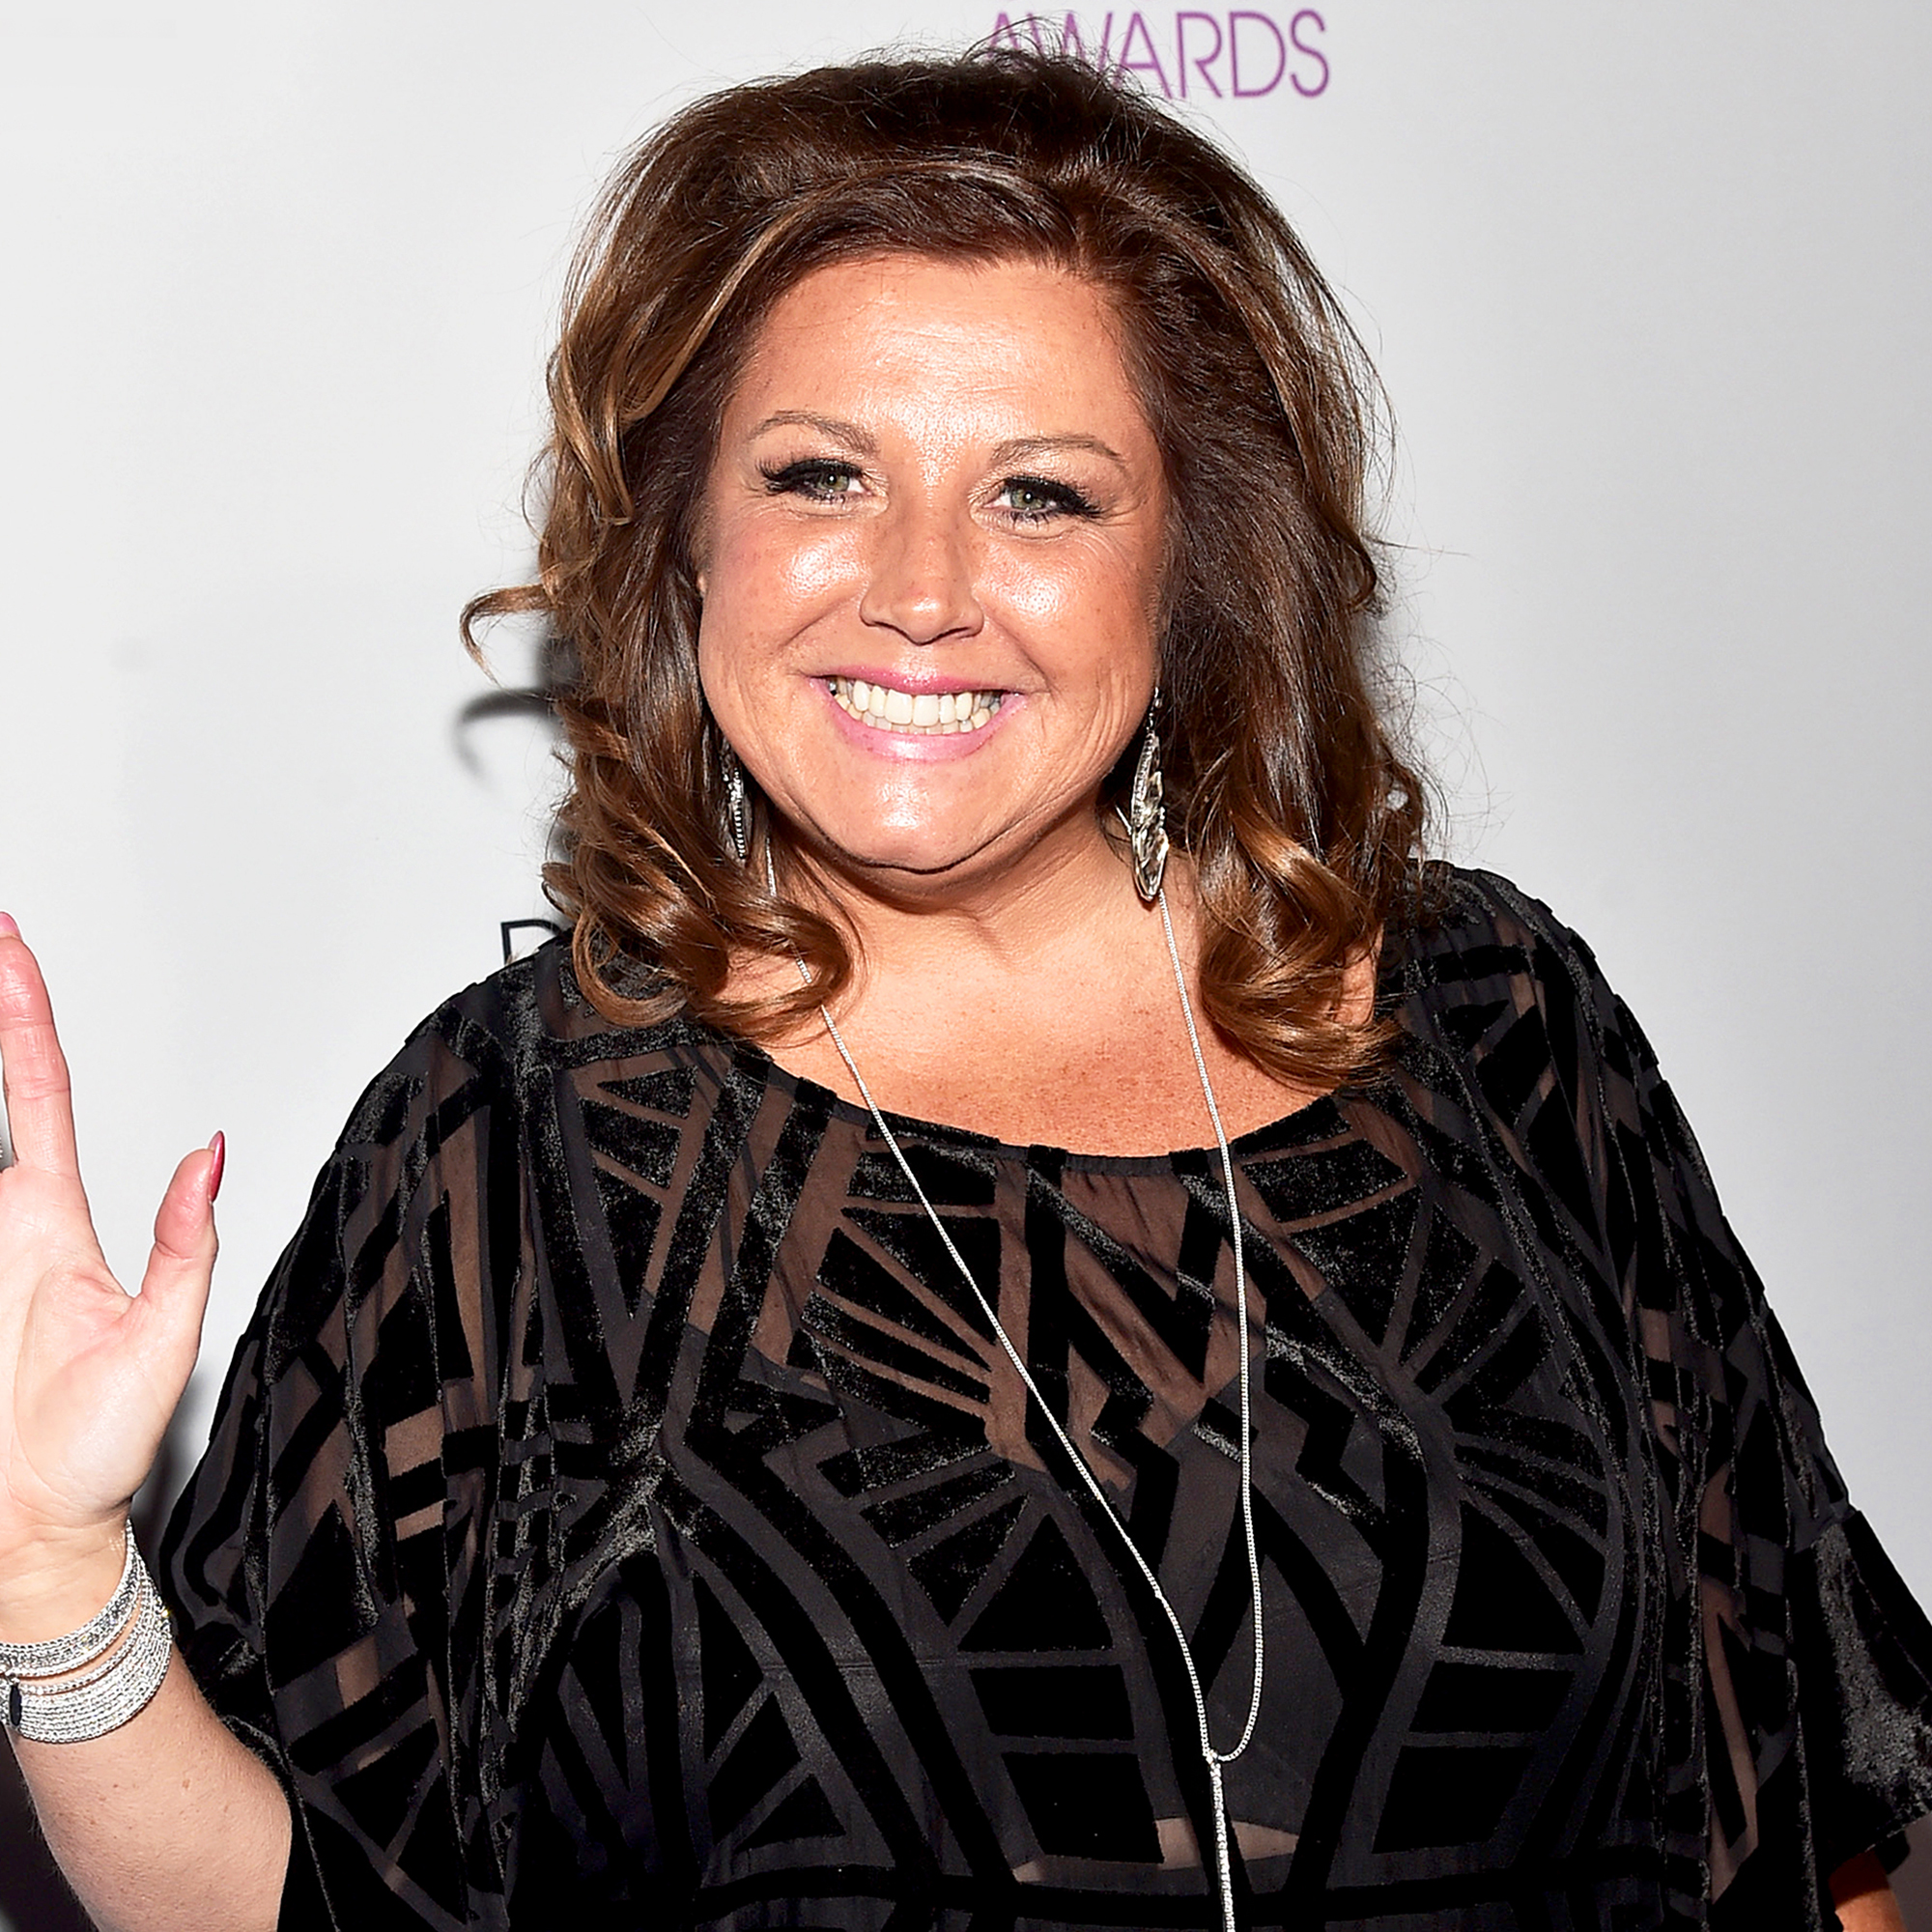 'Dance Moms' star Abby Lee Miller leaves prison, moves into halfway house